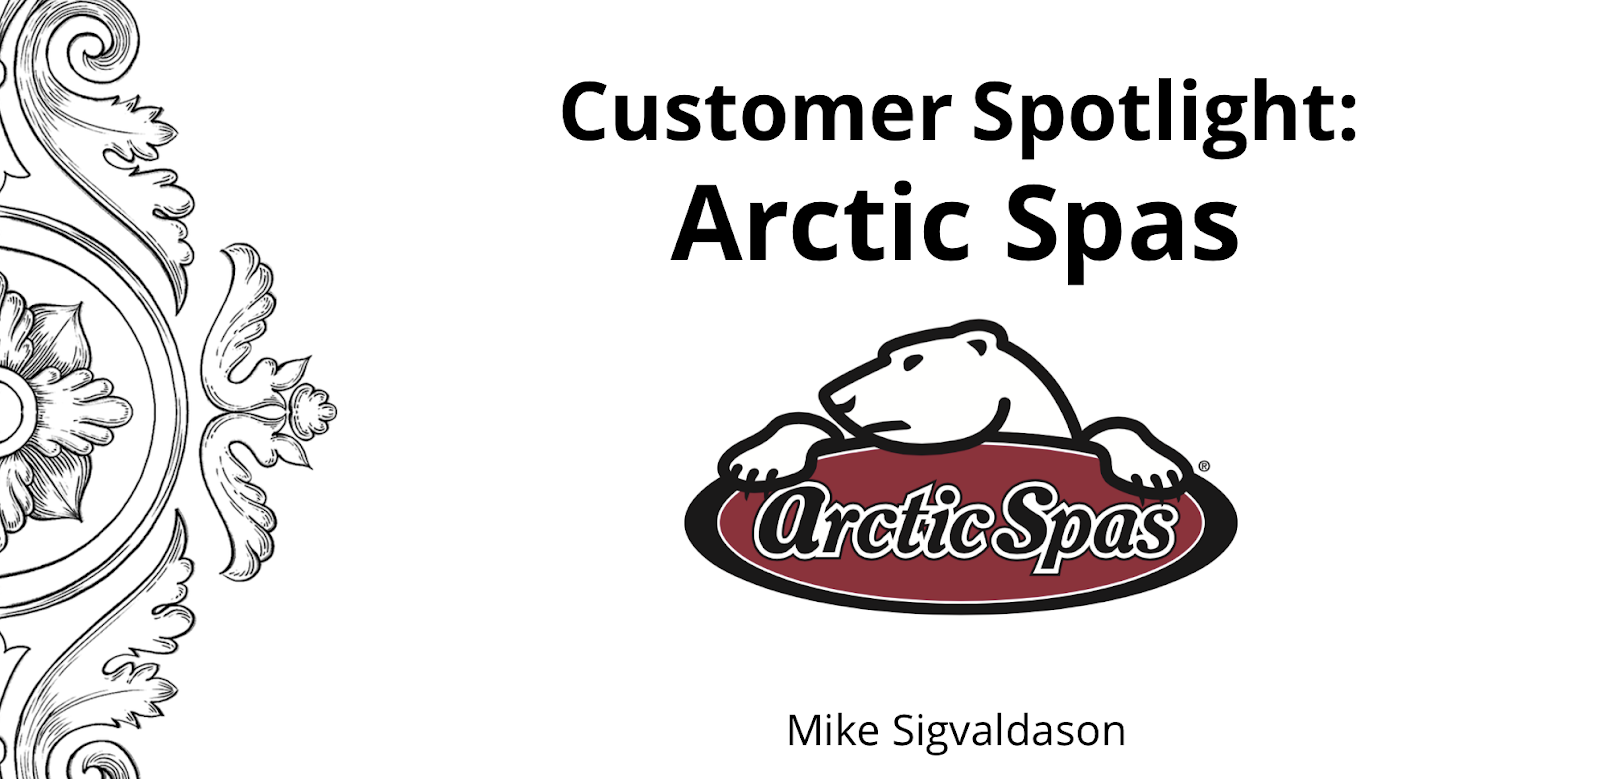 Zoho Customer Spotlight at Arctic Spas